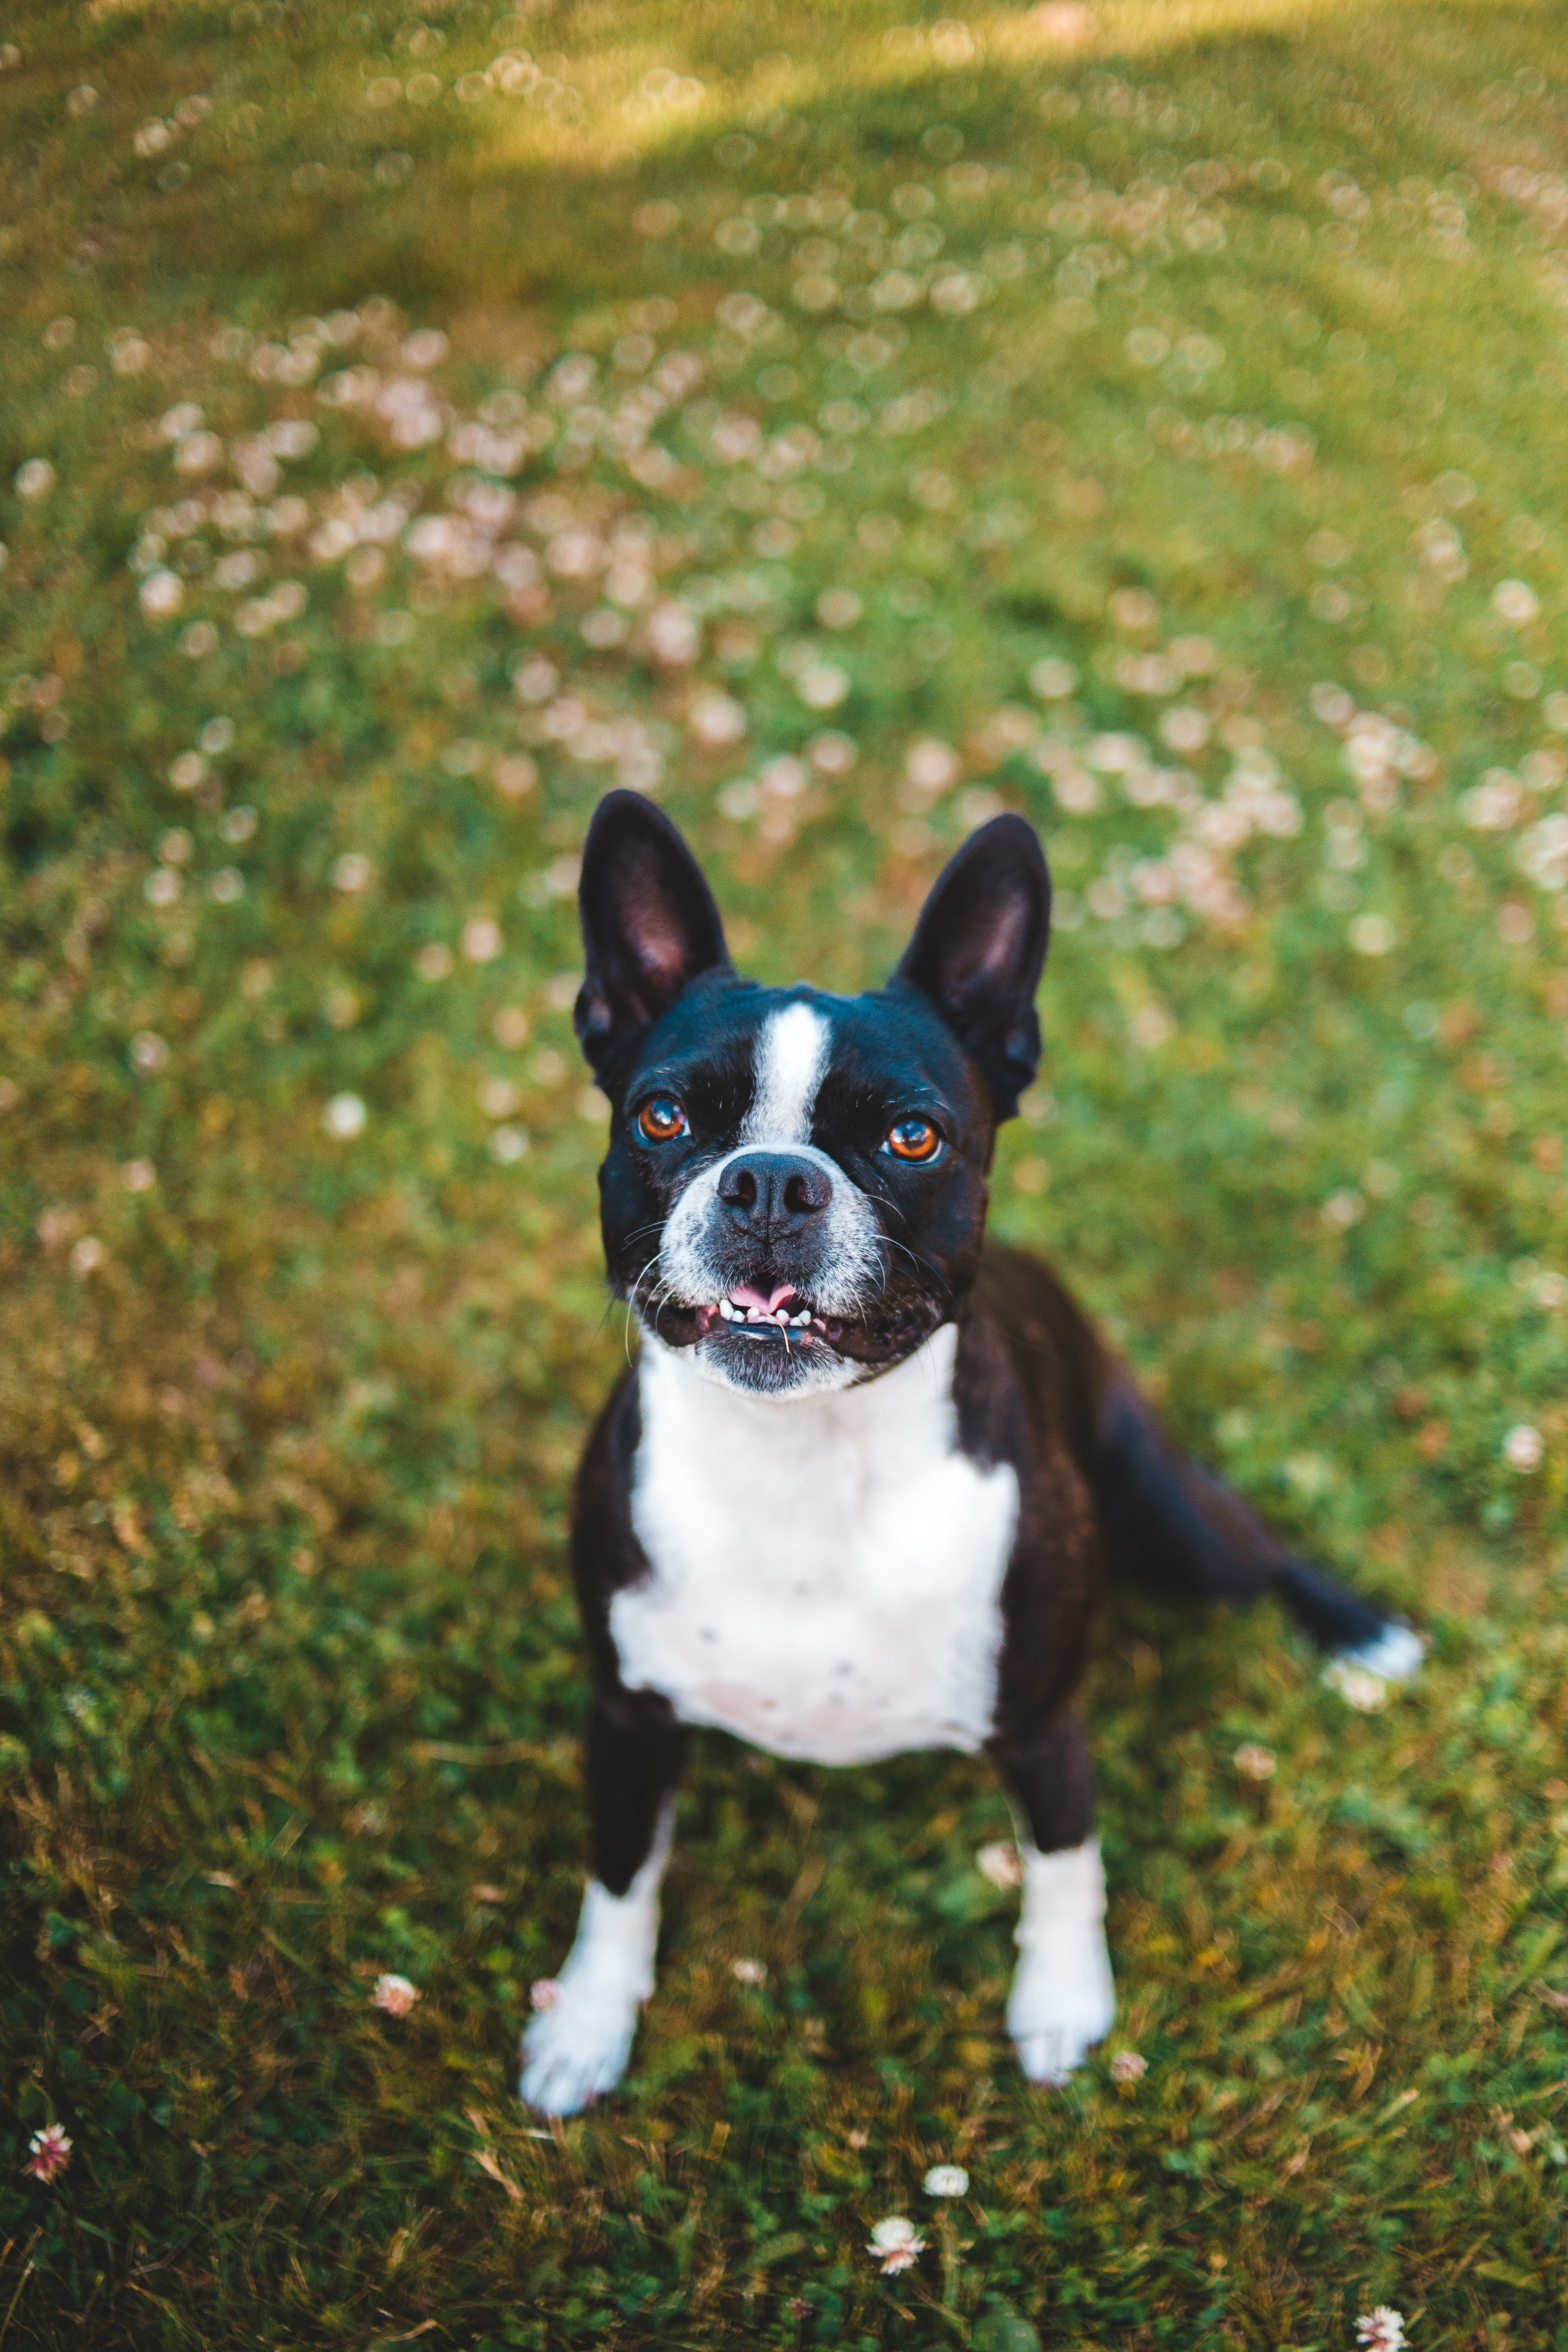 151573 download wallpaper Animals, French Bulldog, Dog, Protruding Tongue, Tongue Stuck Out, Pet screensavers and pictures for free